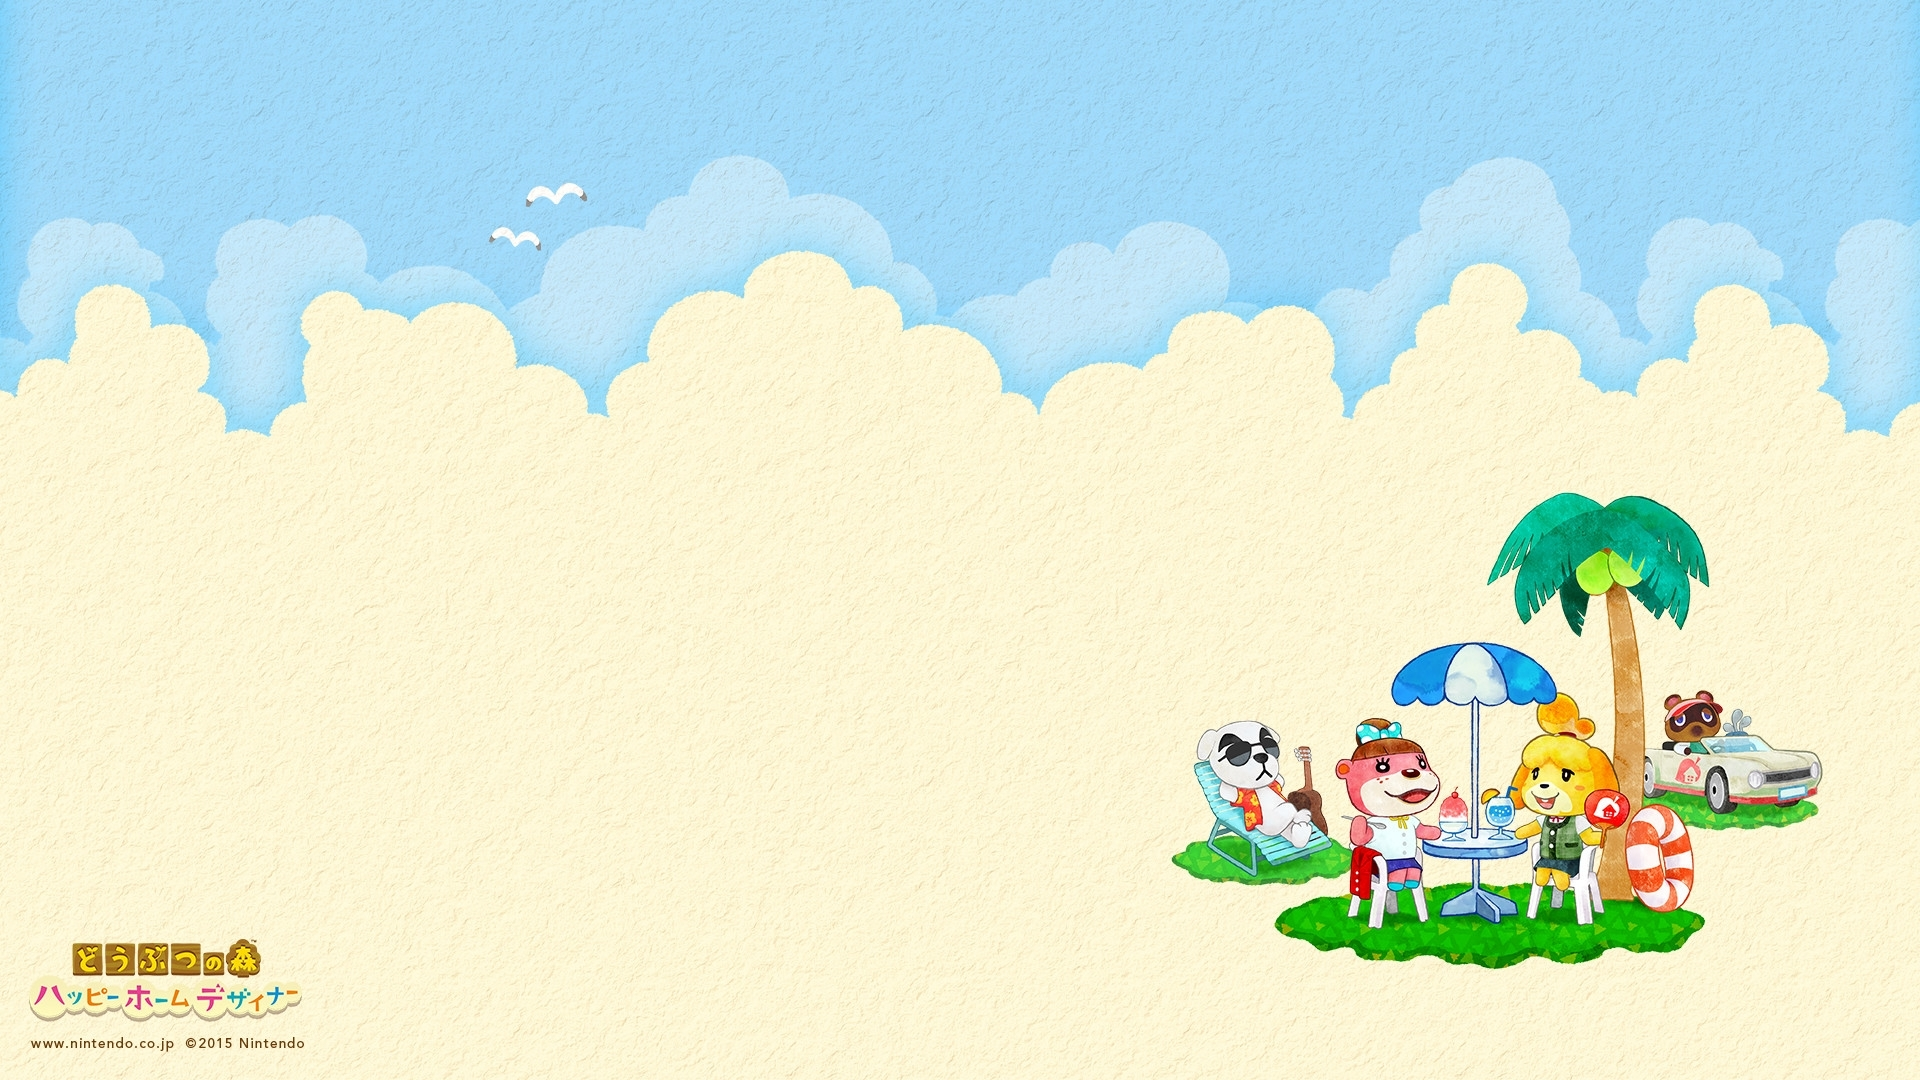 animal crossing desktop wallpaper (80+ images)